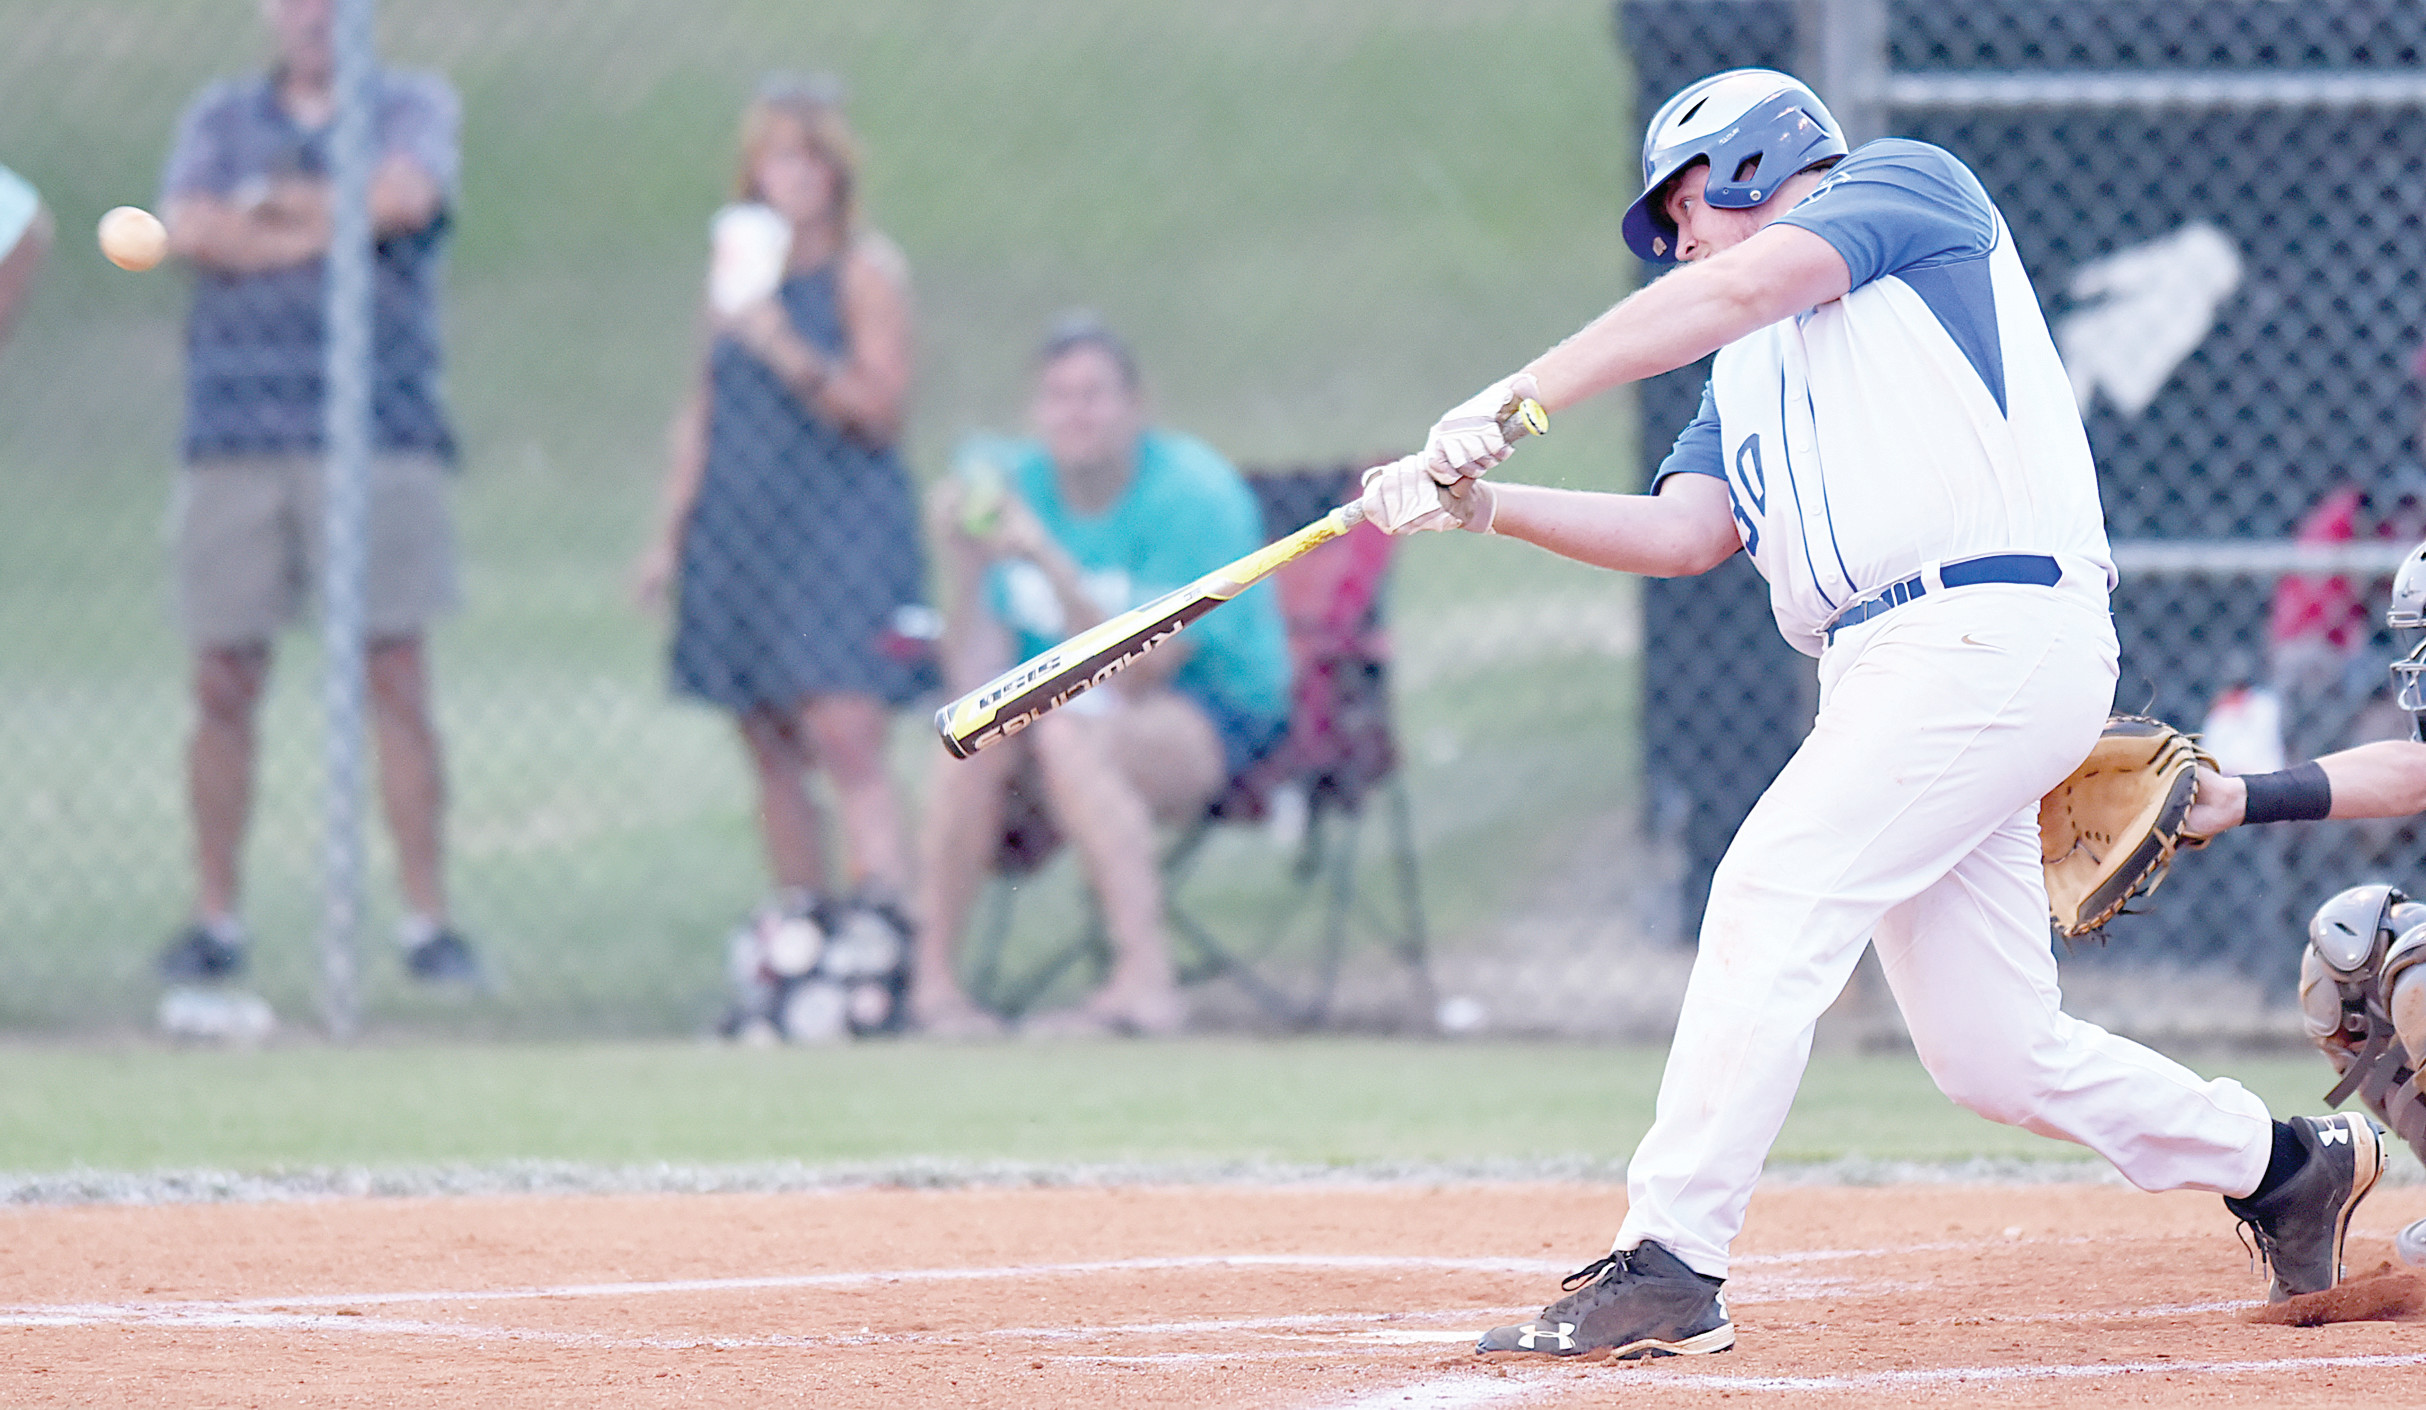 Manning-Santee designated hitter Connor Floyd connects on a pitch for a double during Post 68's 16-5 loss to Horry in seven innings on Thursday in Game 2 of a first-round American Legion state playoff series at Monarch Field in Manning.